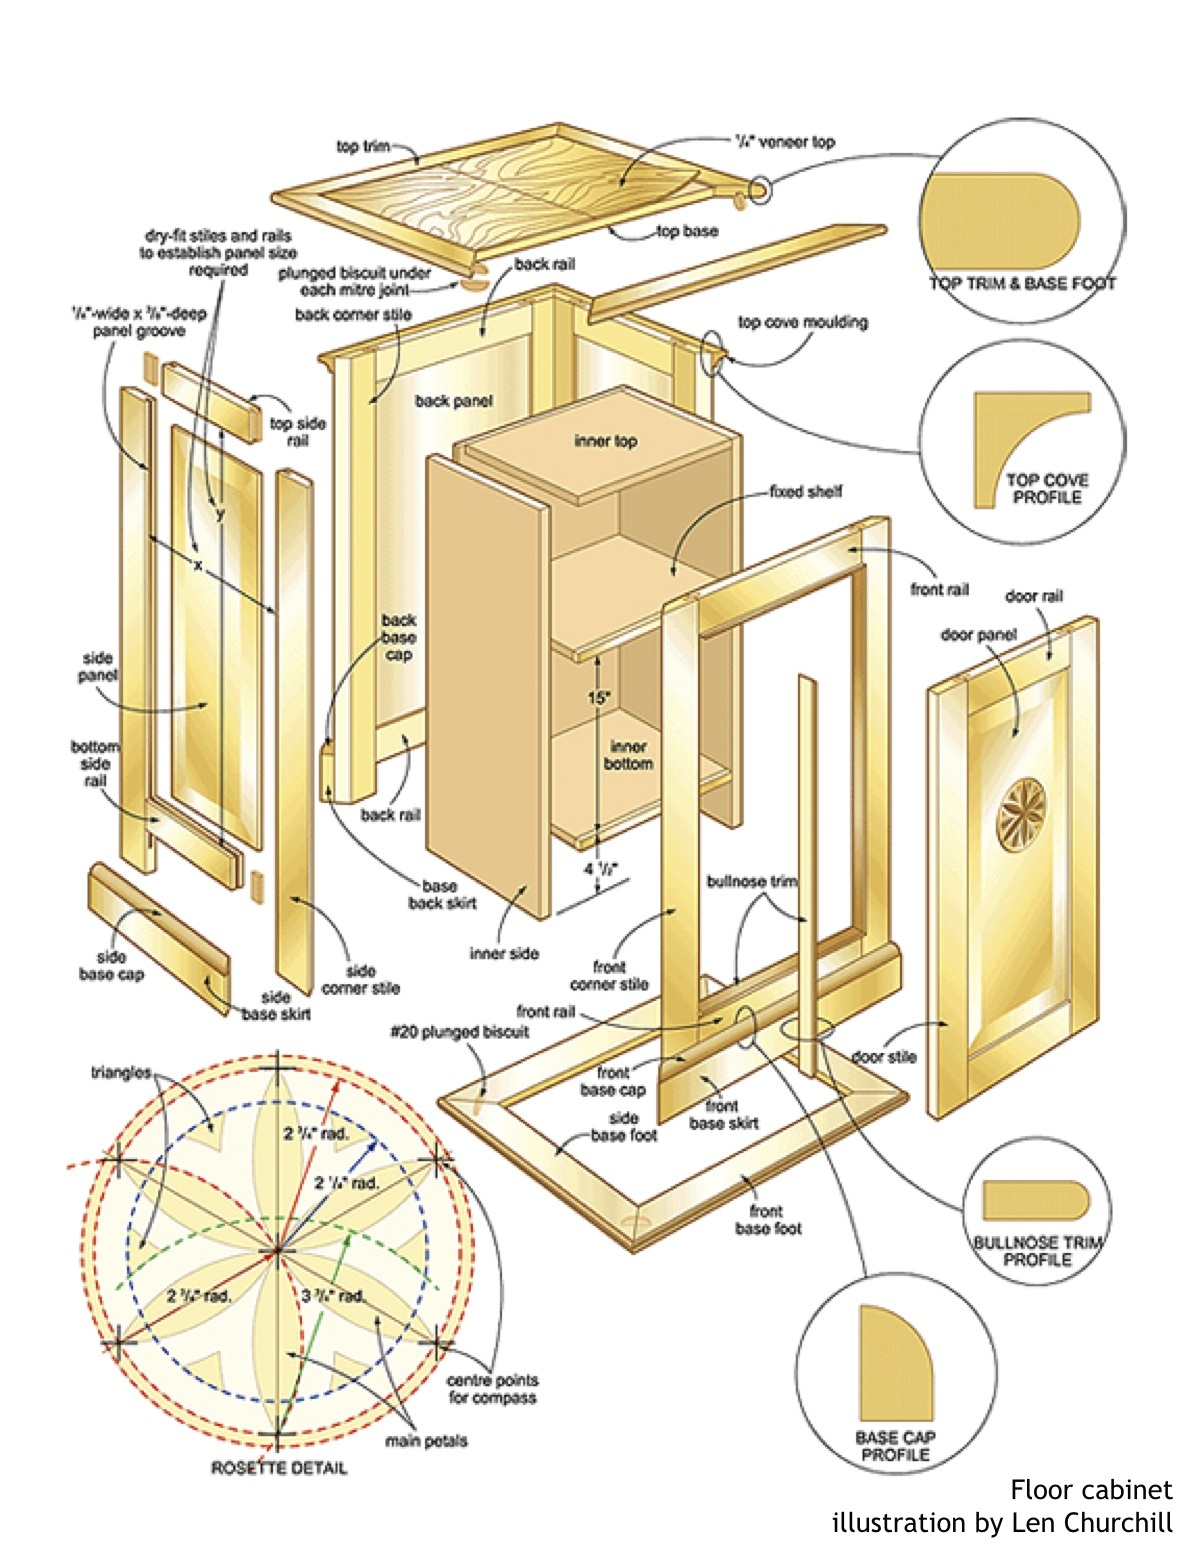 Woodworking plans wood projects cabinet pdf plans Wardrobe cabinet design woodworking plans